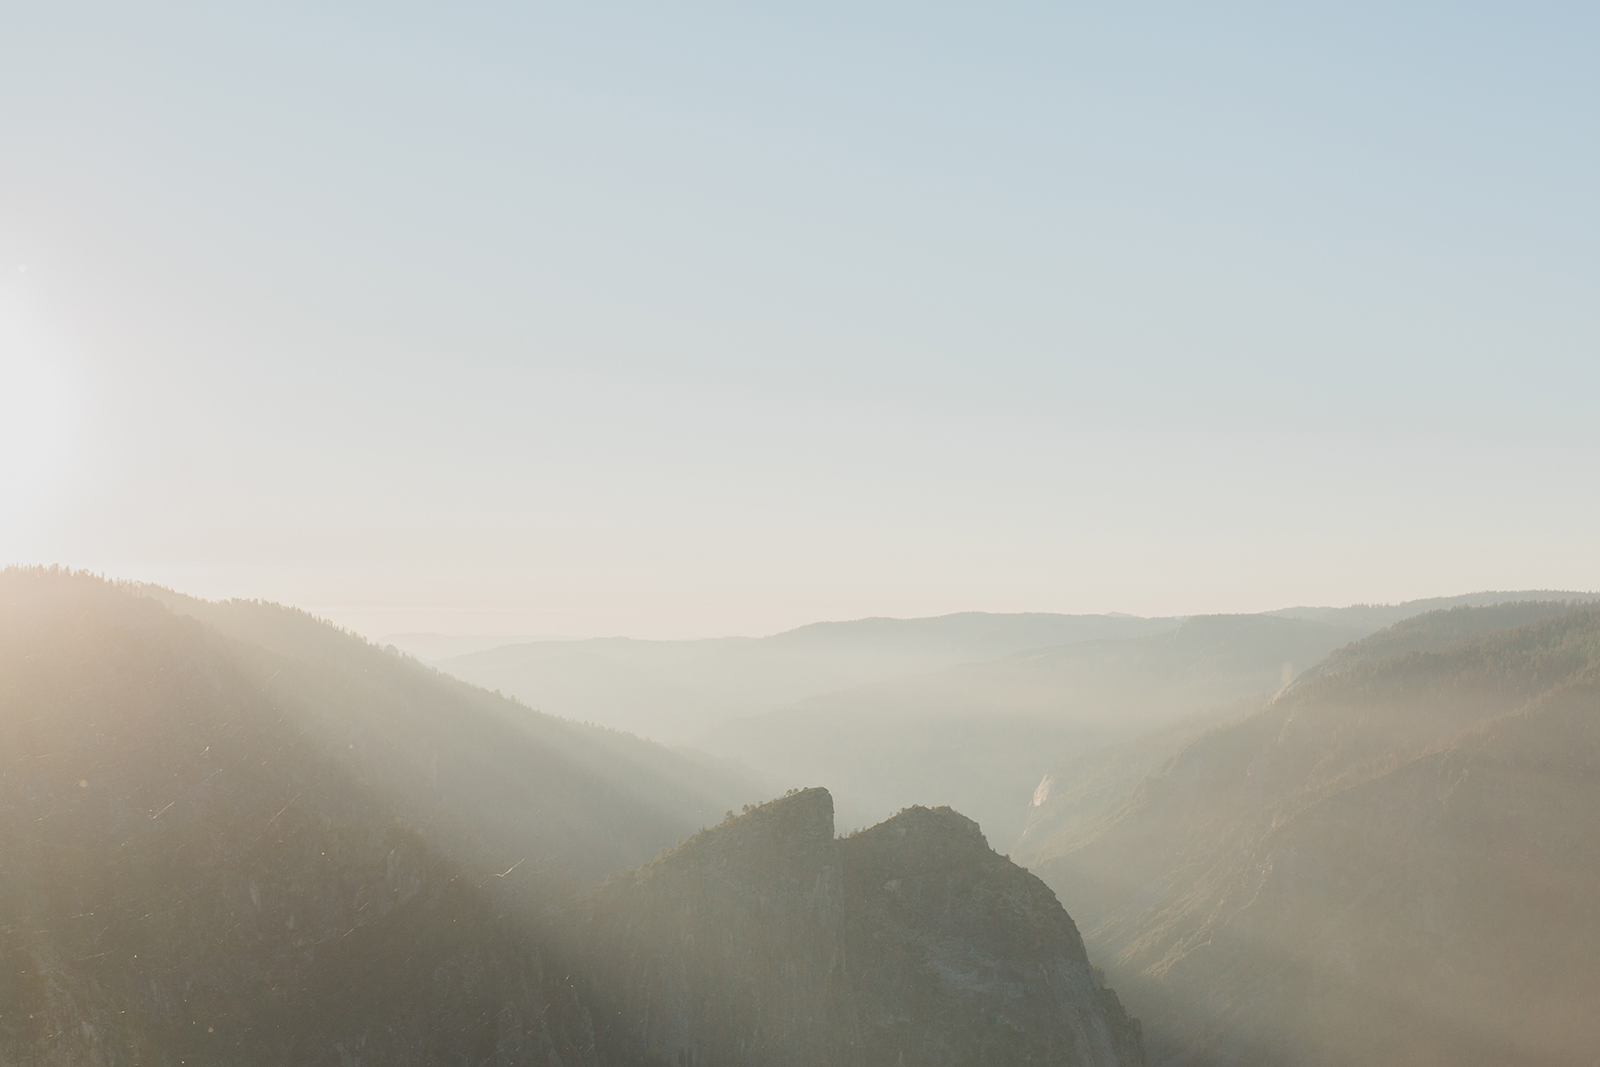 View of mountains during Miguel and Dulce's engagement session in Yosemite National Park.